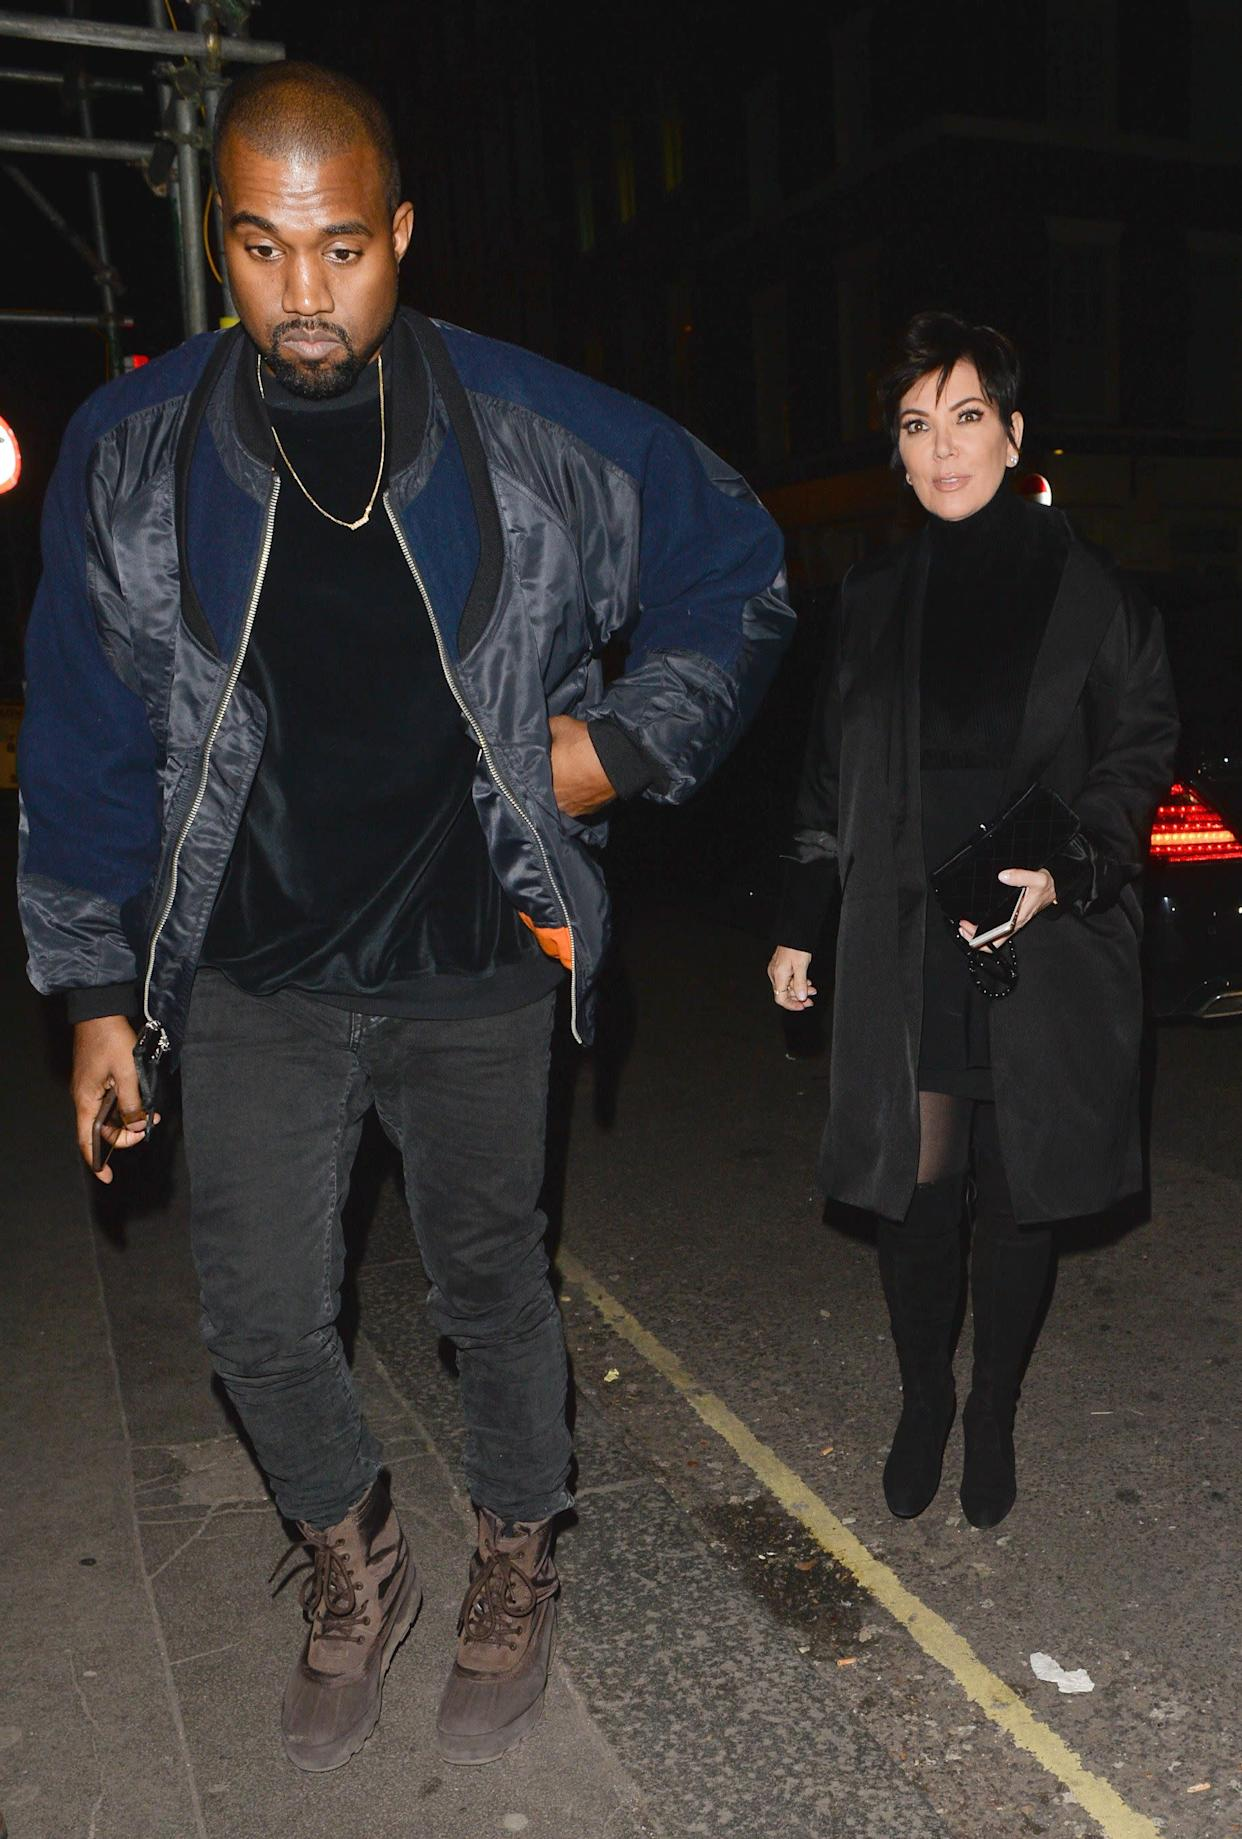 West and Kris Jenner atthe Arts club on March 2 in London.